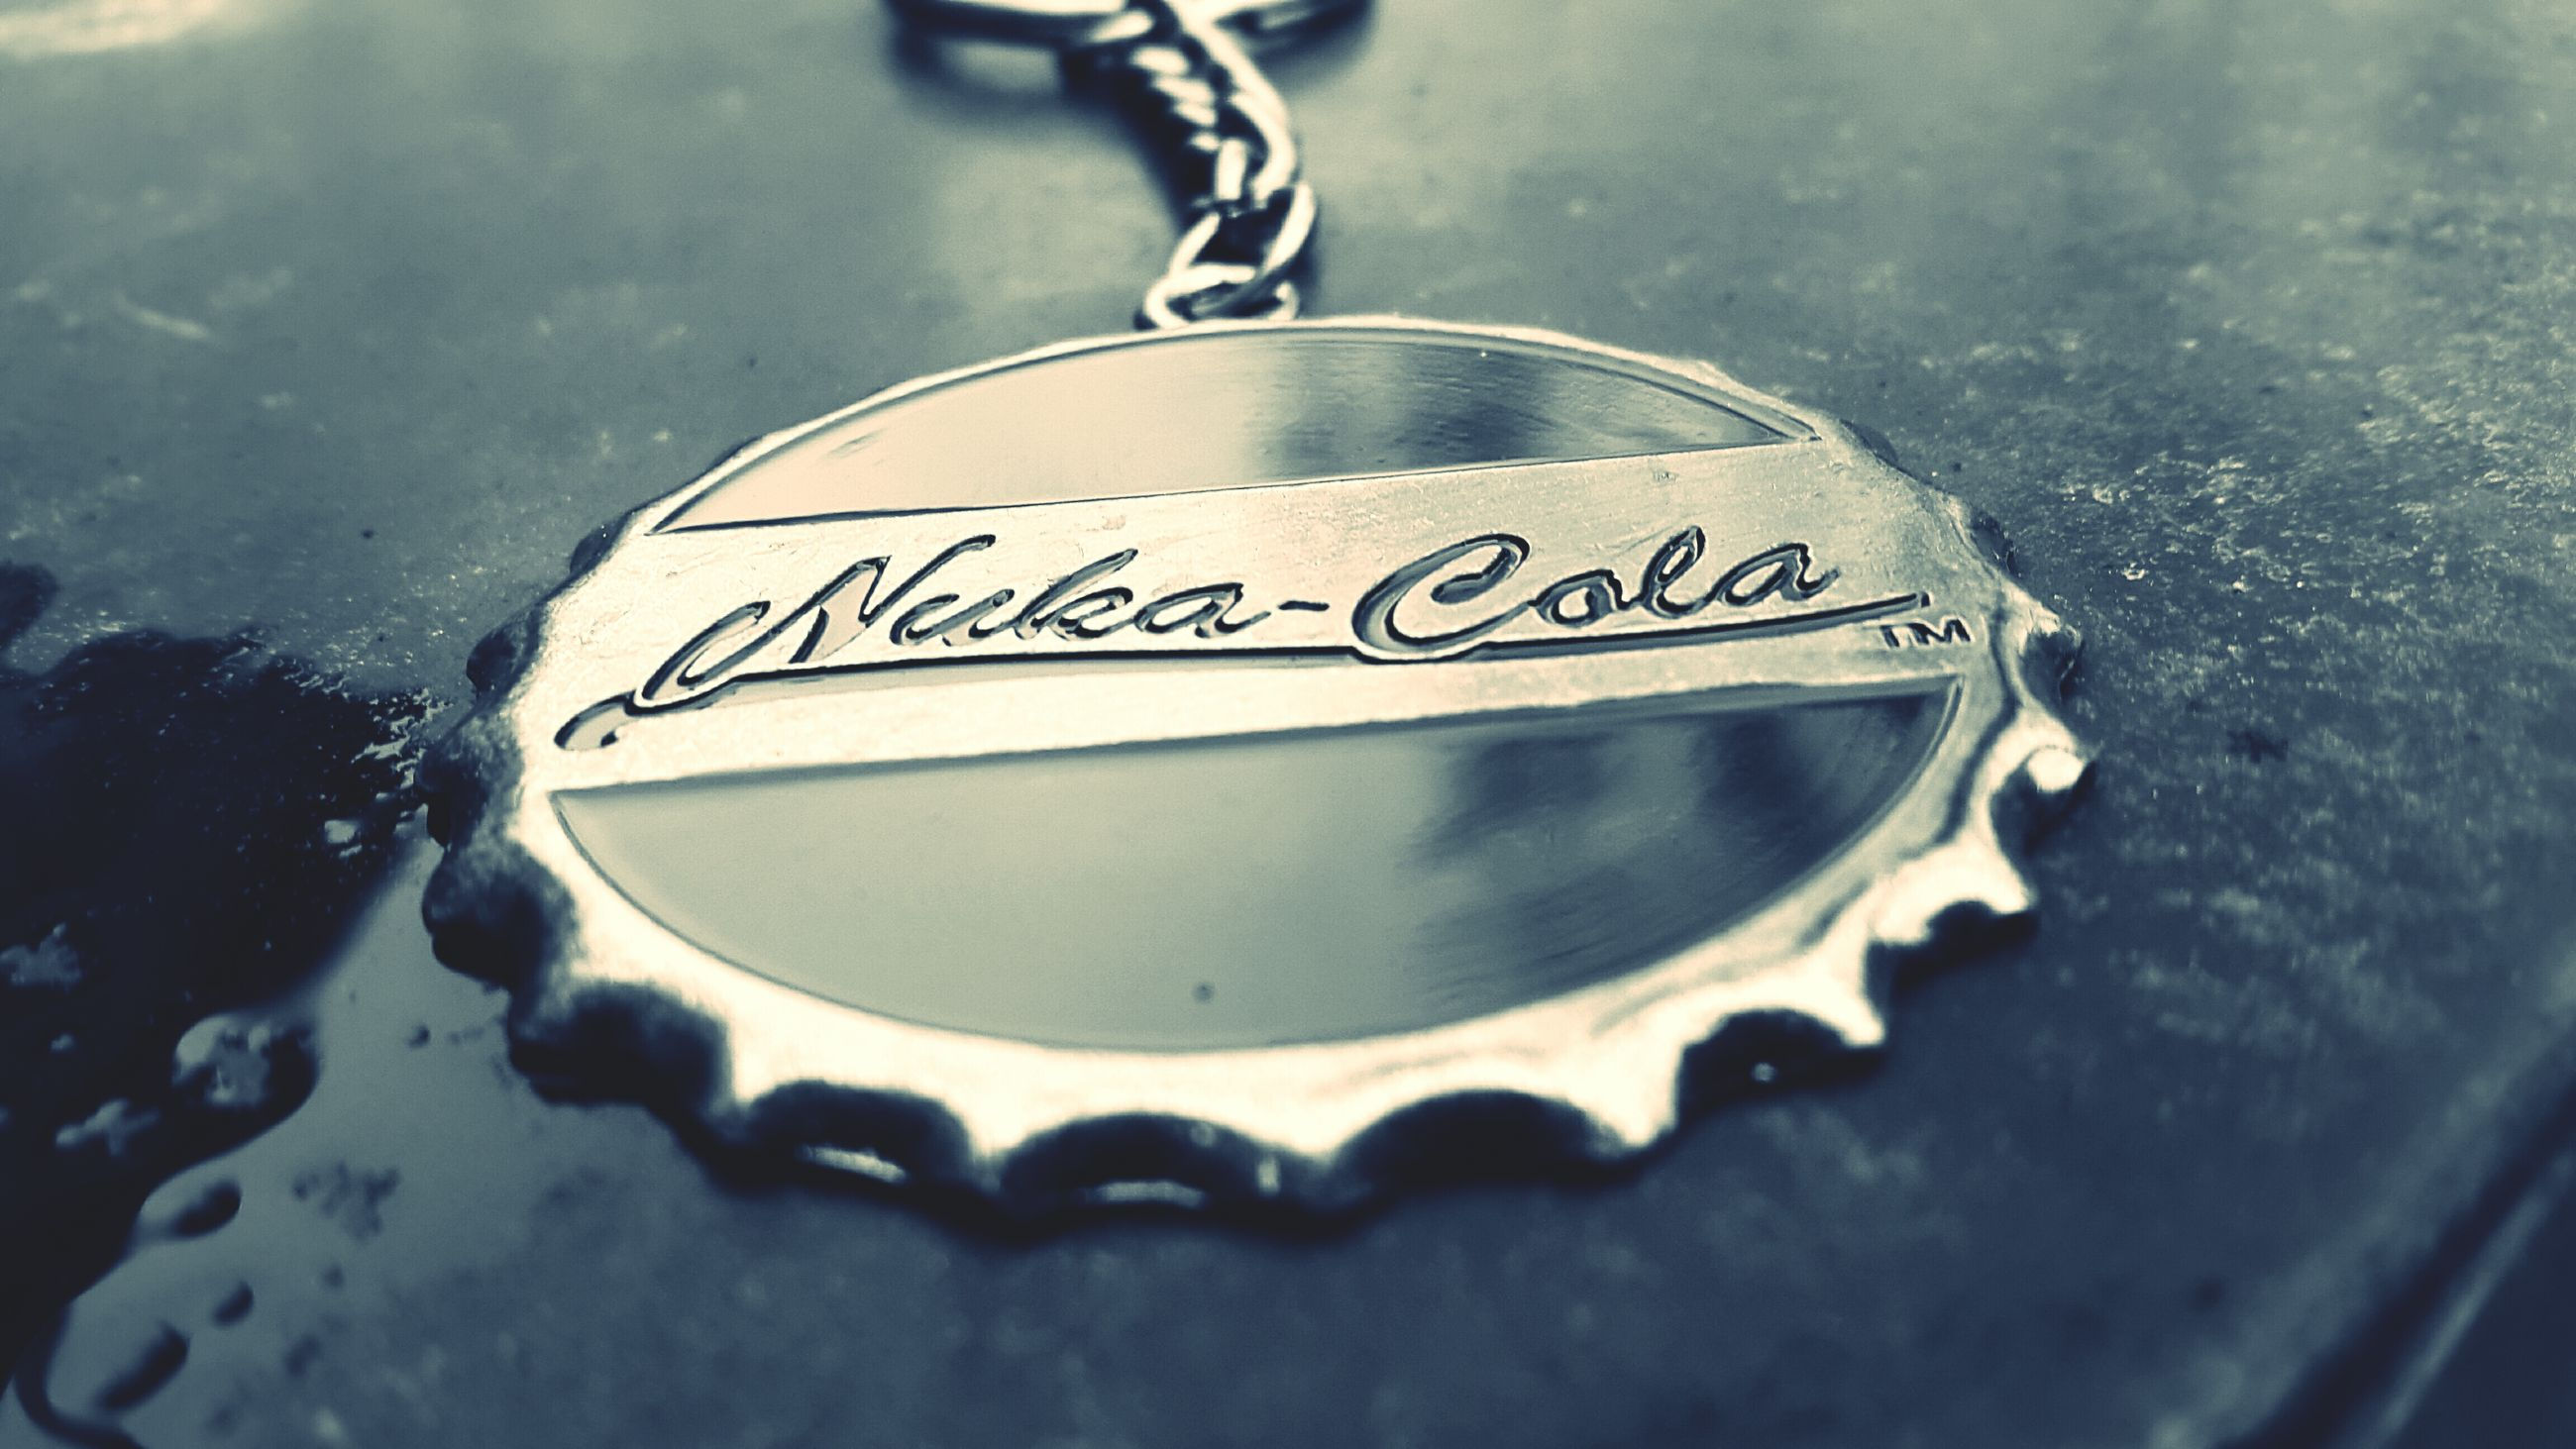 text, western script, close-up, communication, indoors, still life, focus on foreground, metal, selective focus, love, single object, no people, high angle view, table, heart shape, message, capital letter, number, circle, food and drink